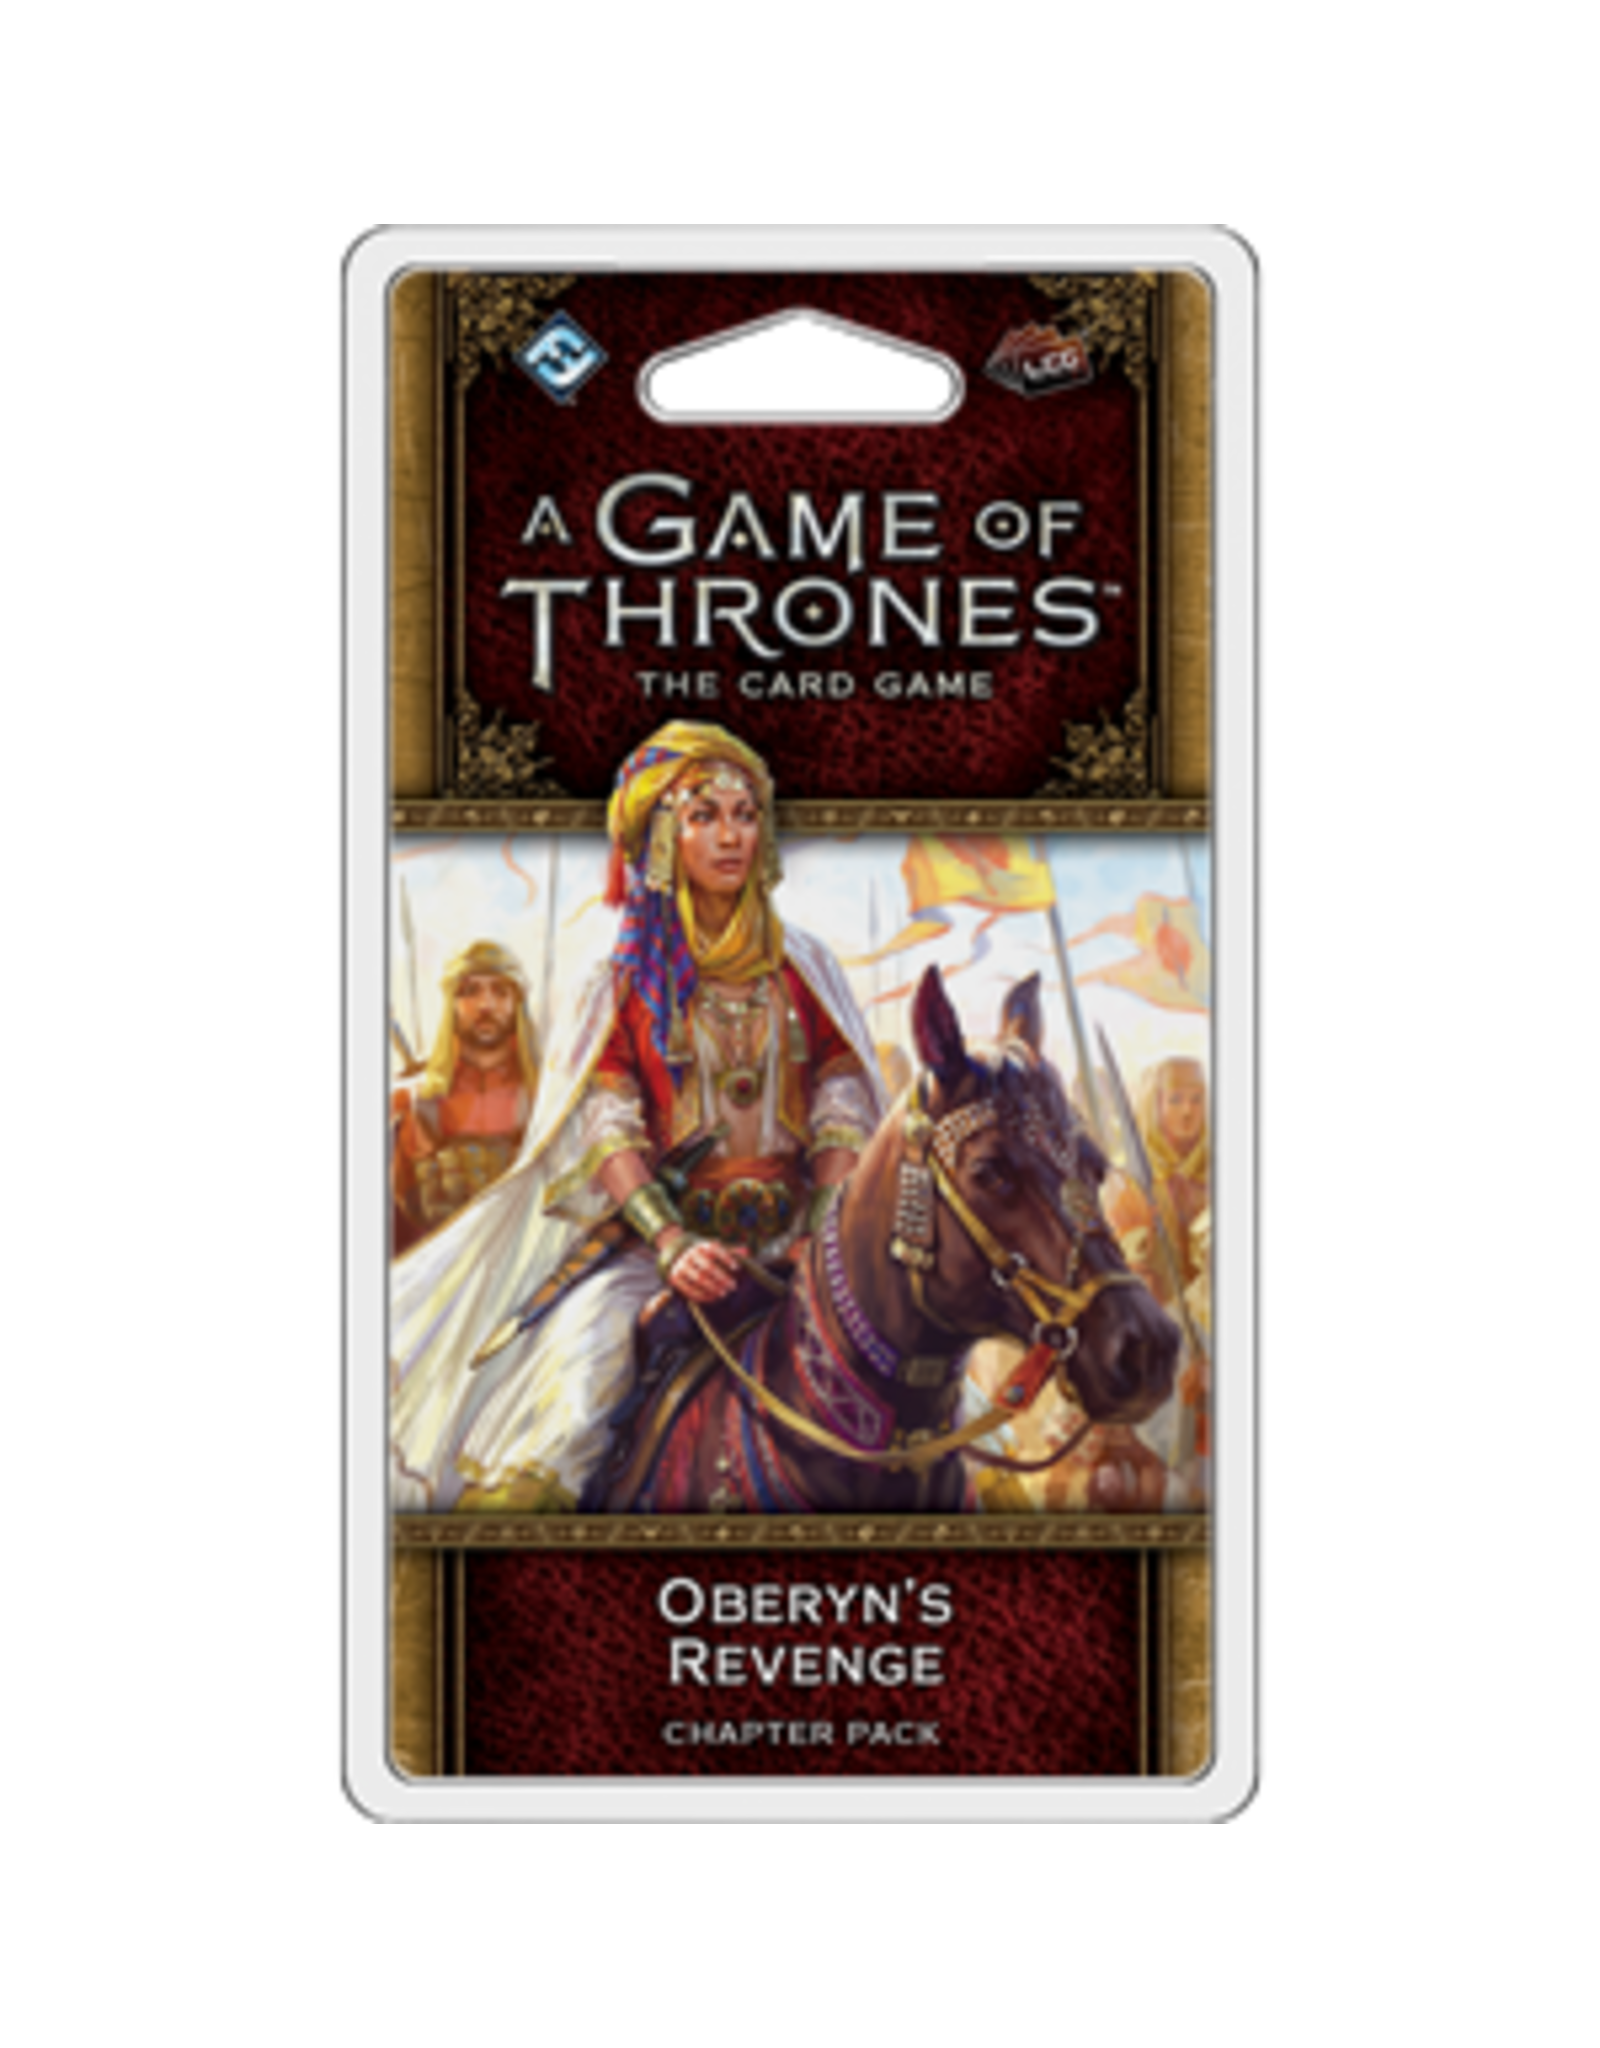 Game of Thrones LCG: Oberyn's Revenge (Expansion)